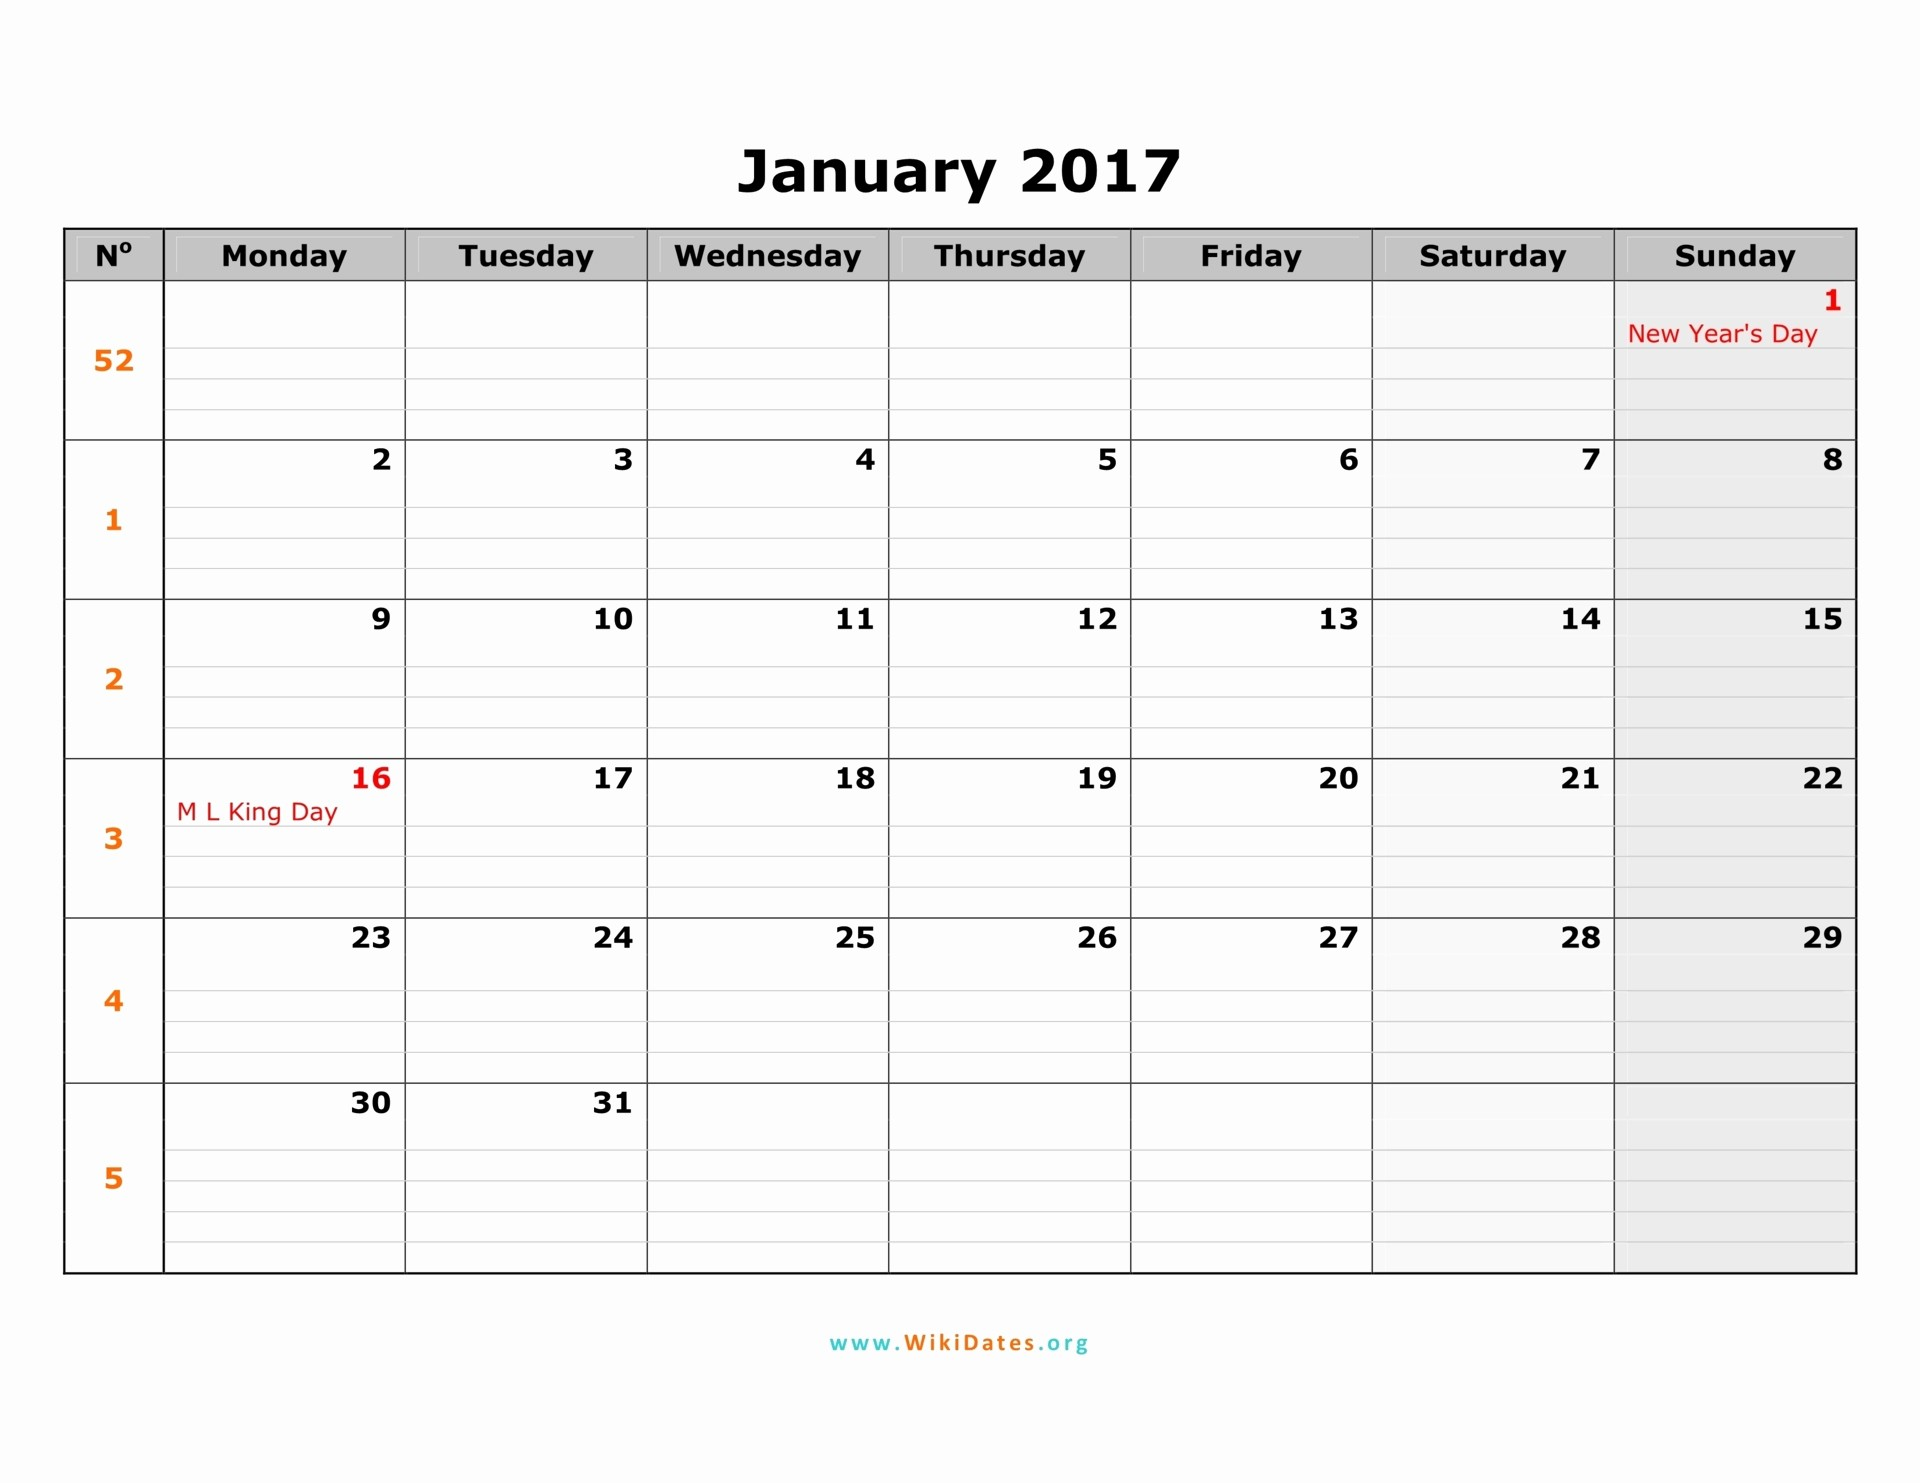 Monday to Sunday Calendar 2017 Inspirational 2017 Calendar